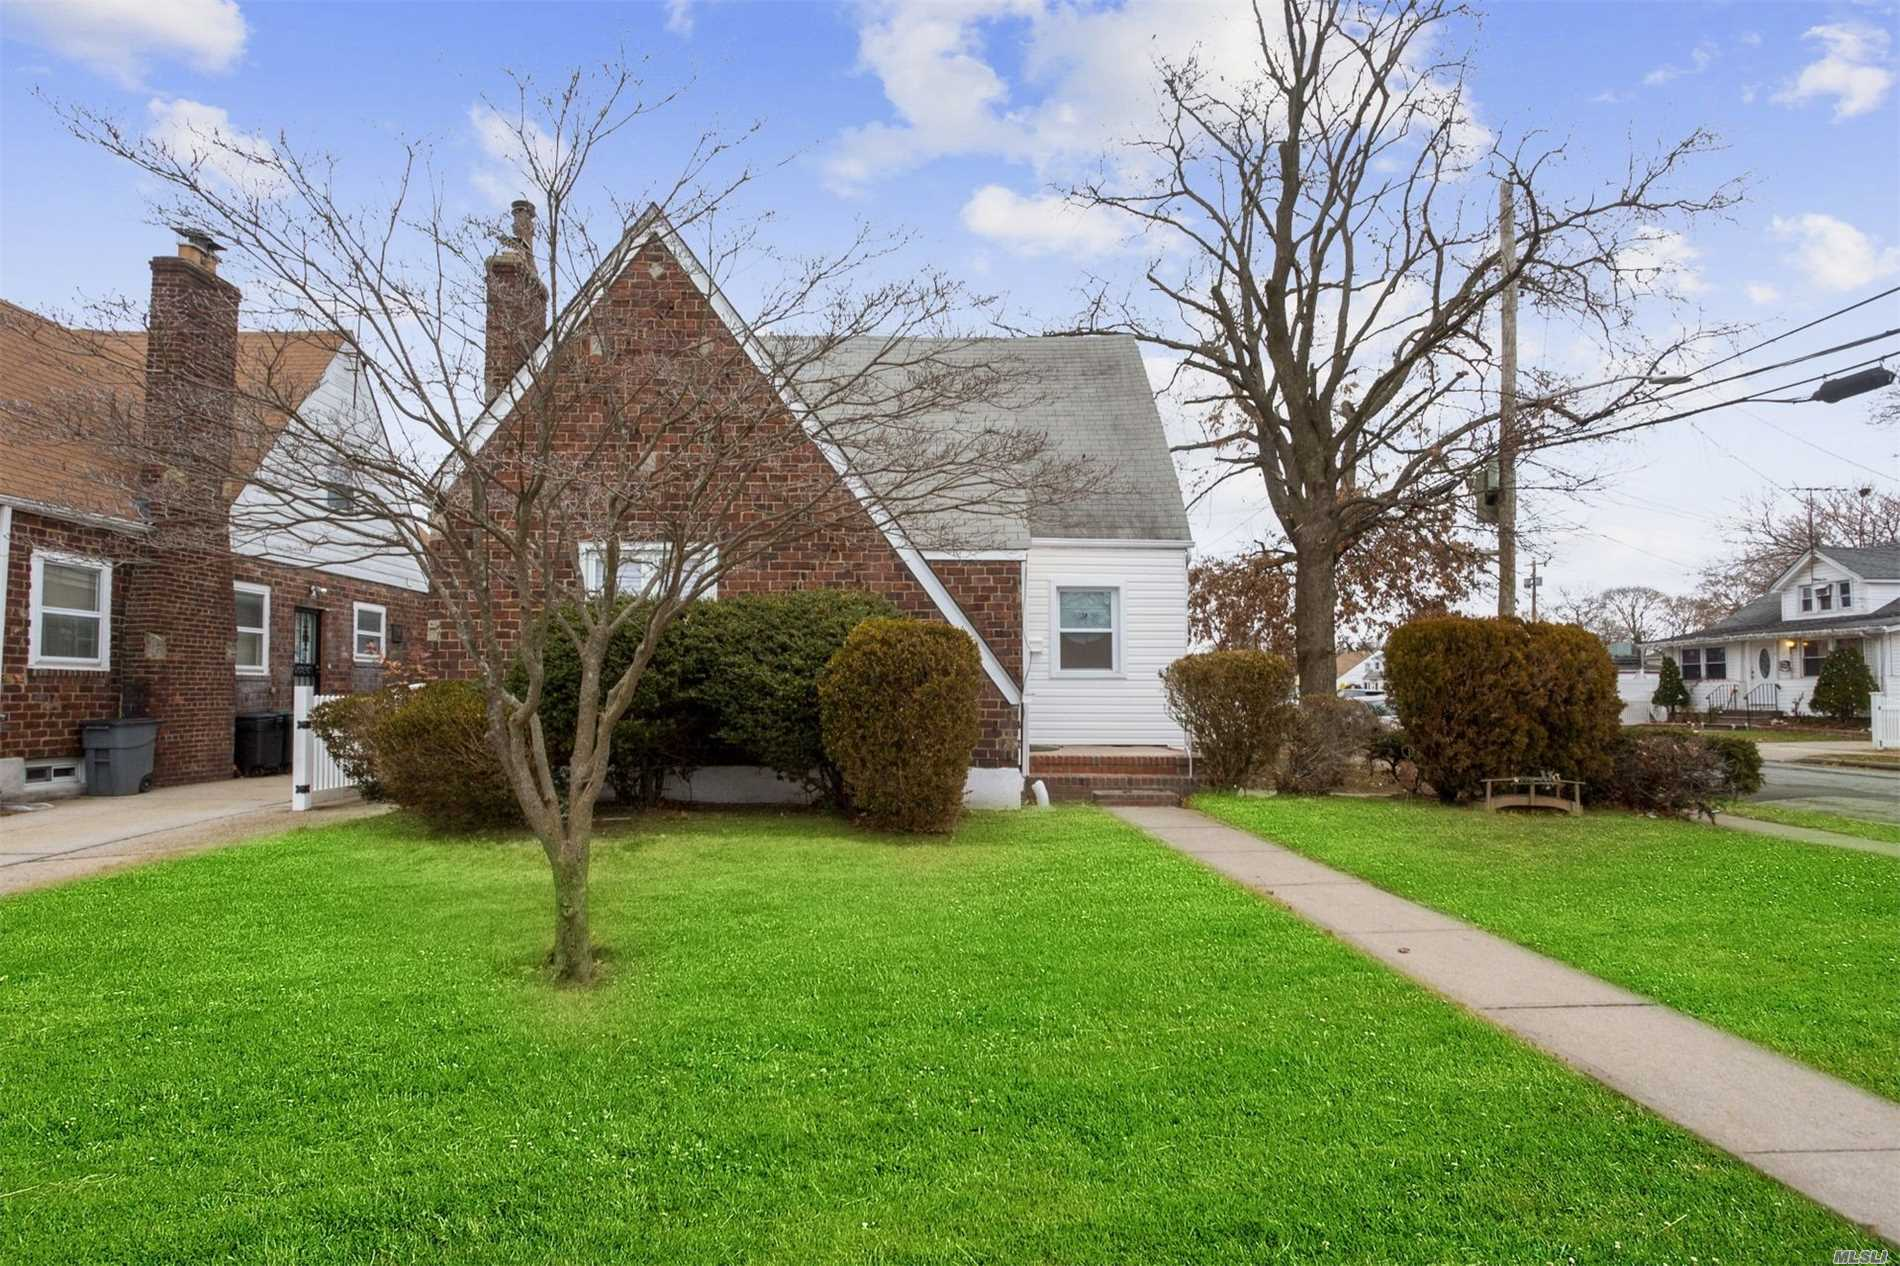 Hempstead. A Must See Home. Beautifully Done No Expense Spared Totally Renovated Brick Cape. Brand New Kitchen Appliances, New Bathrooms, New Floors. New Electric, Plumbing, Gas Heating System, Boiler And Hot Water Tank. Close To Highways And Shopping. Move In Ready.